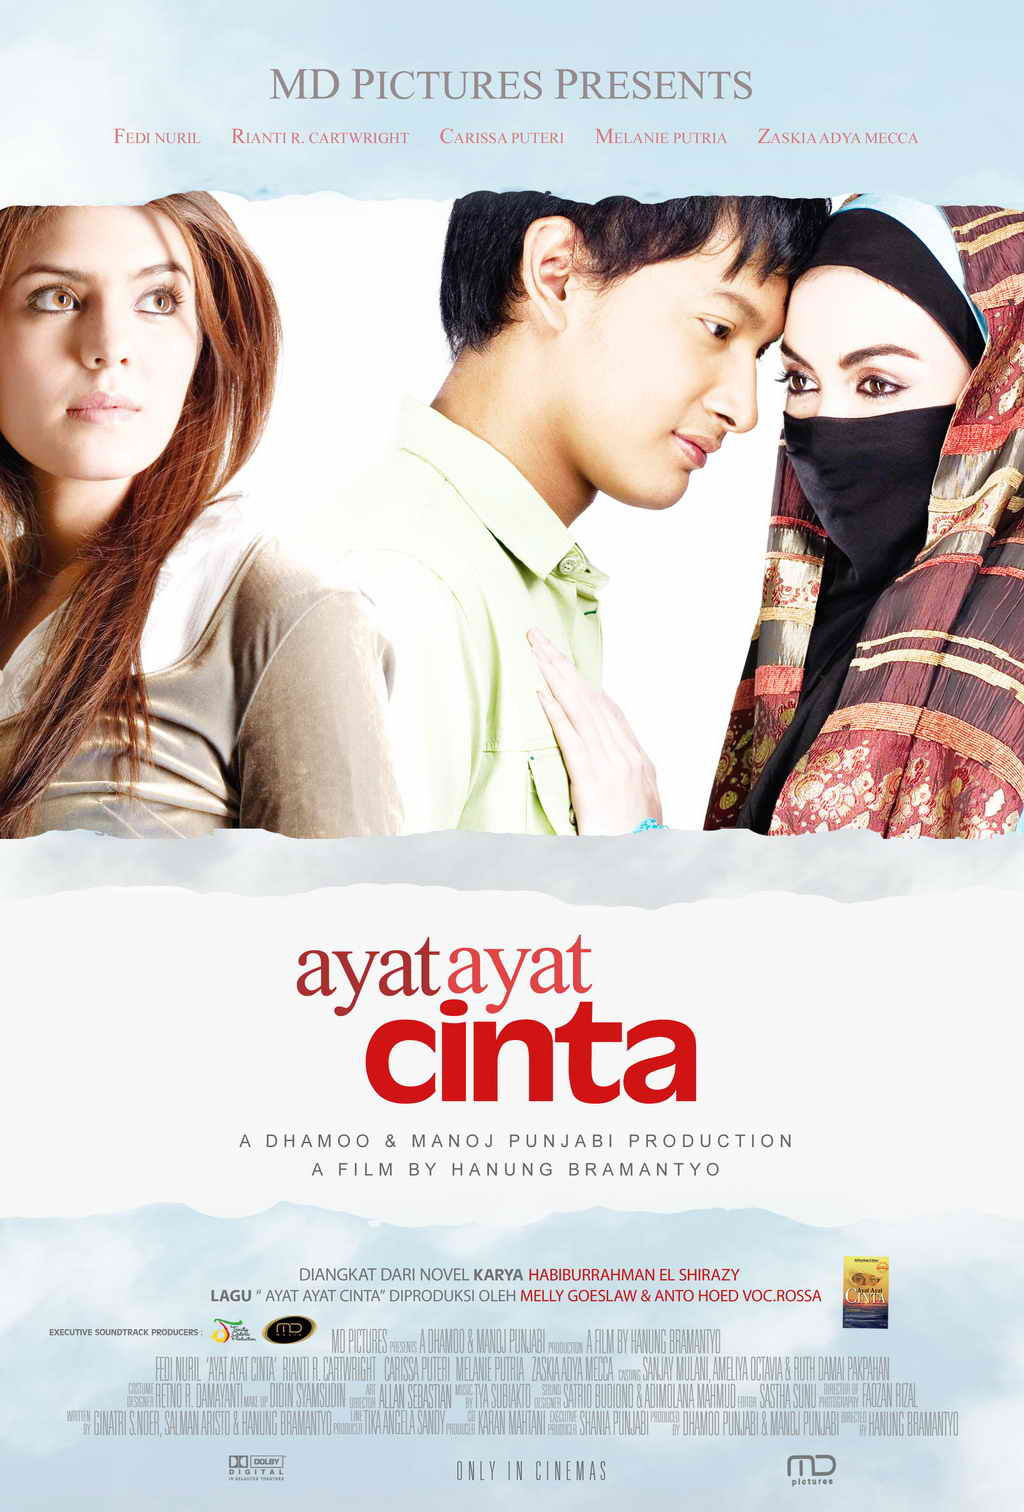 Download Lagu Ayat Cinta : download, cinta, Dilemma:, Ayat-ayat, Cinta